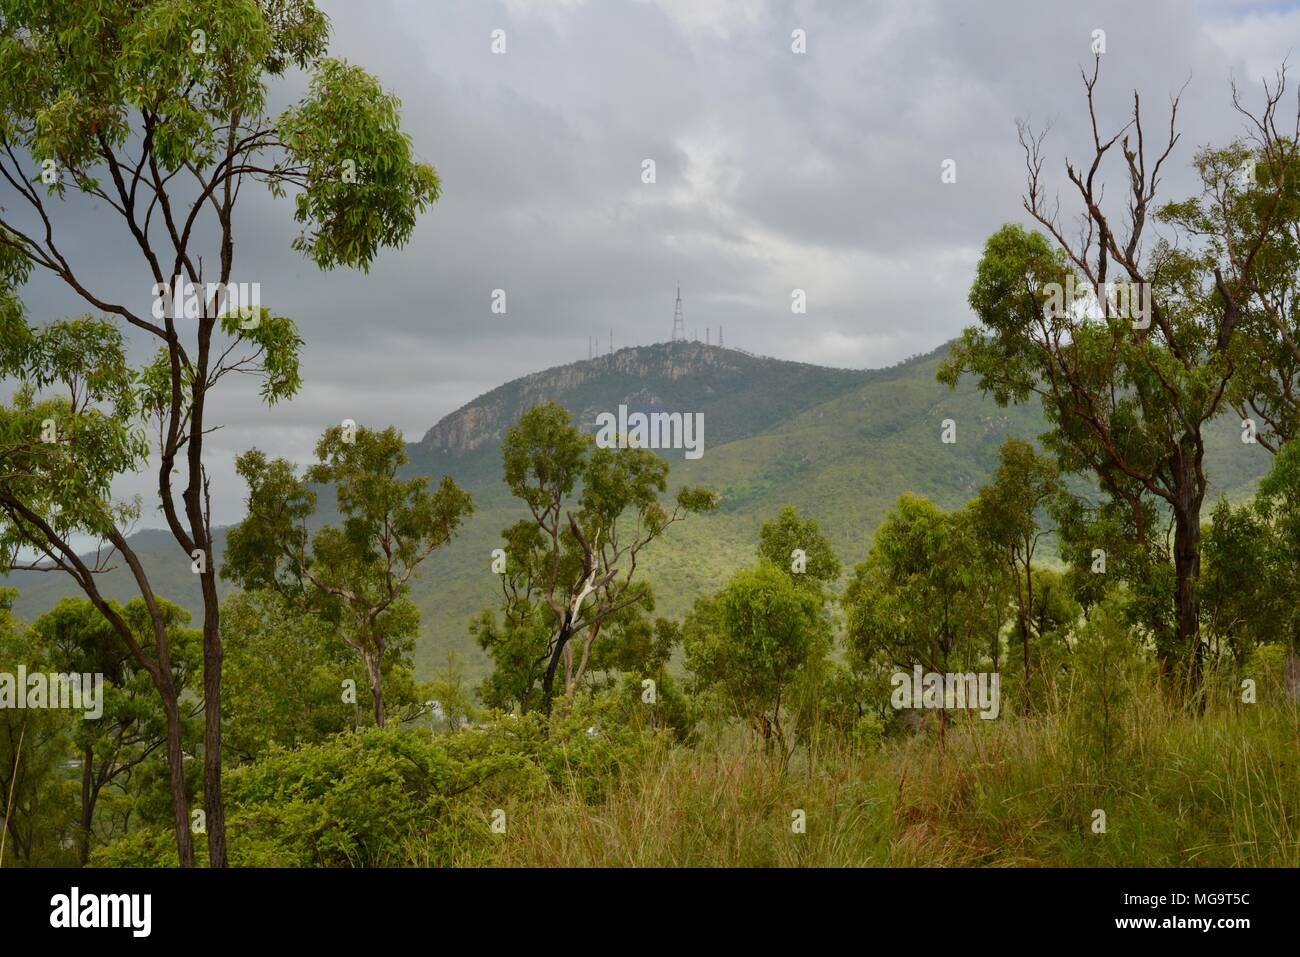 Mount stuart on a stormy day with gray clouds, Mount Stuart hiking trails, Townsville, Queensland, Australia Stock Photo